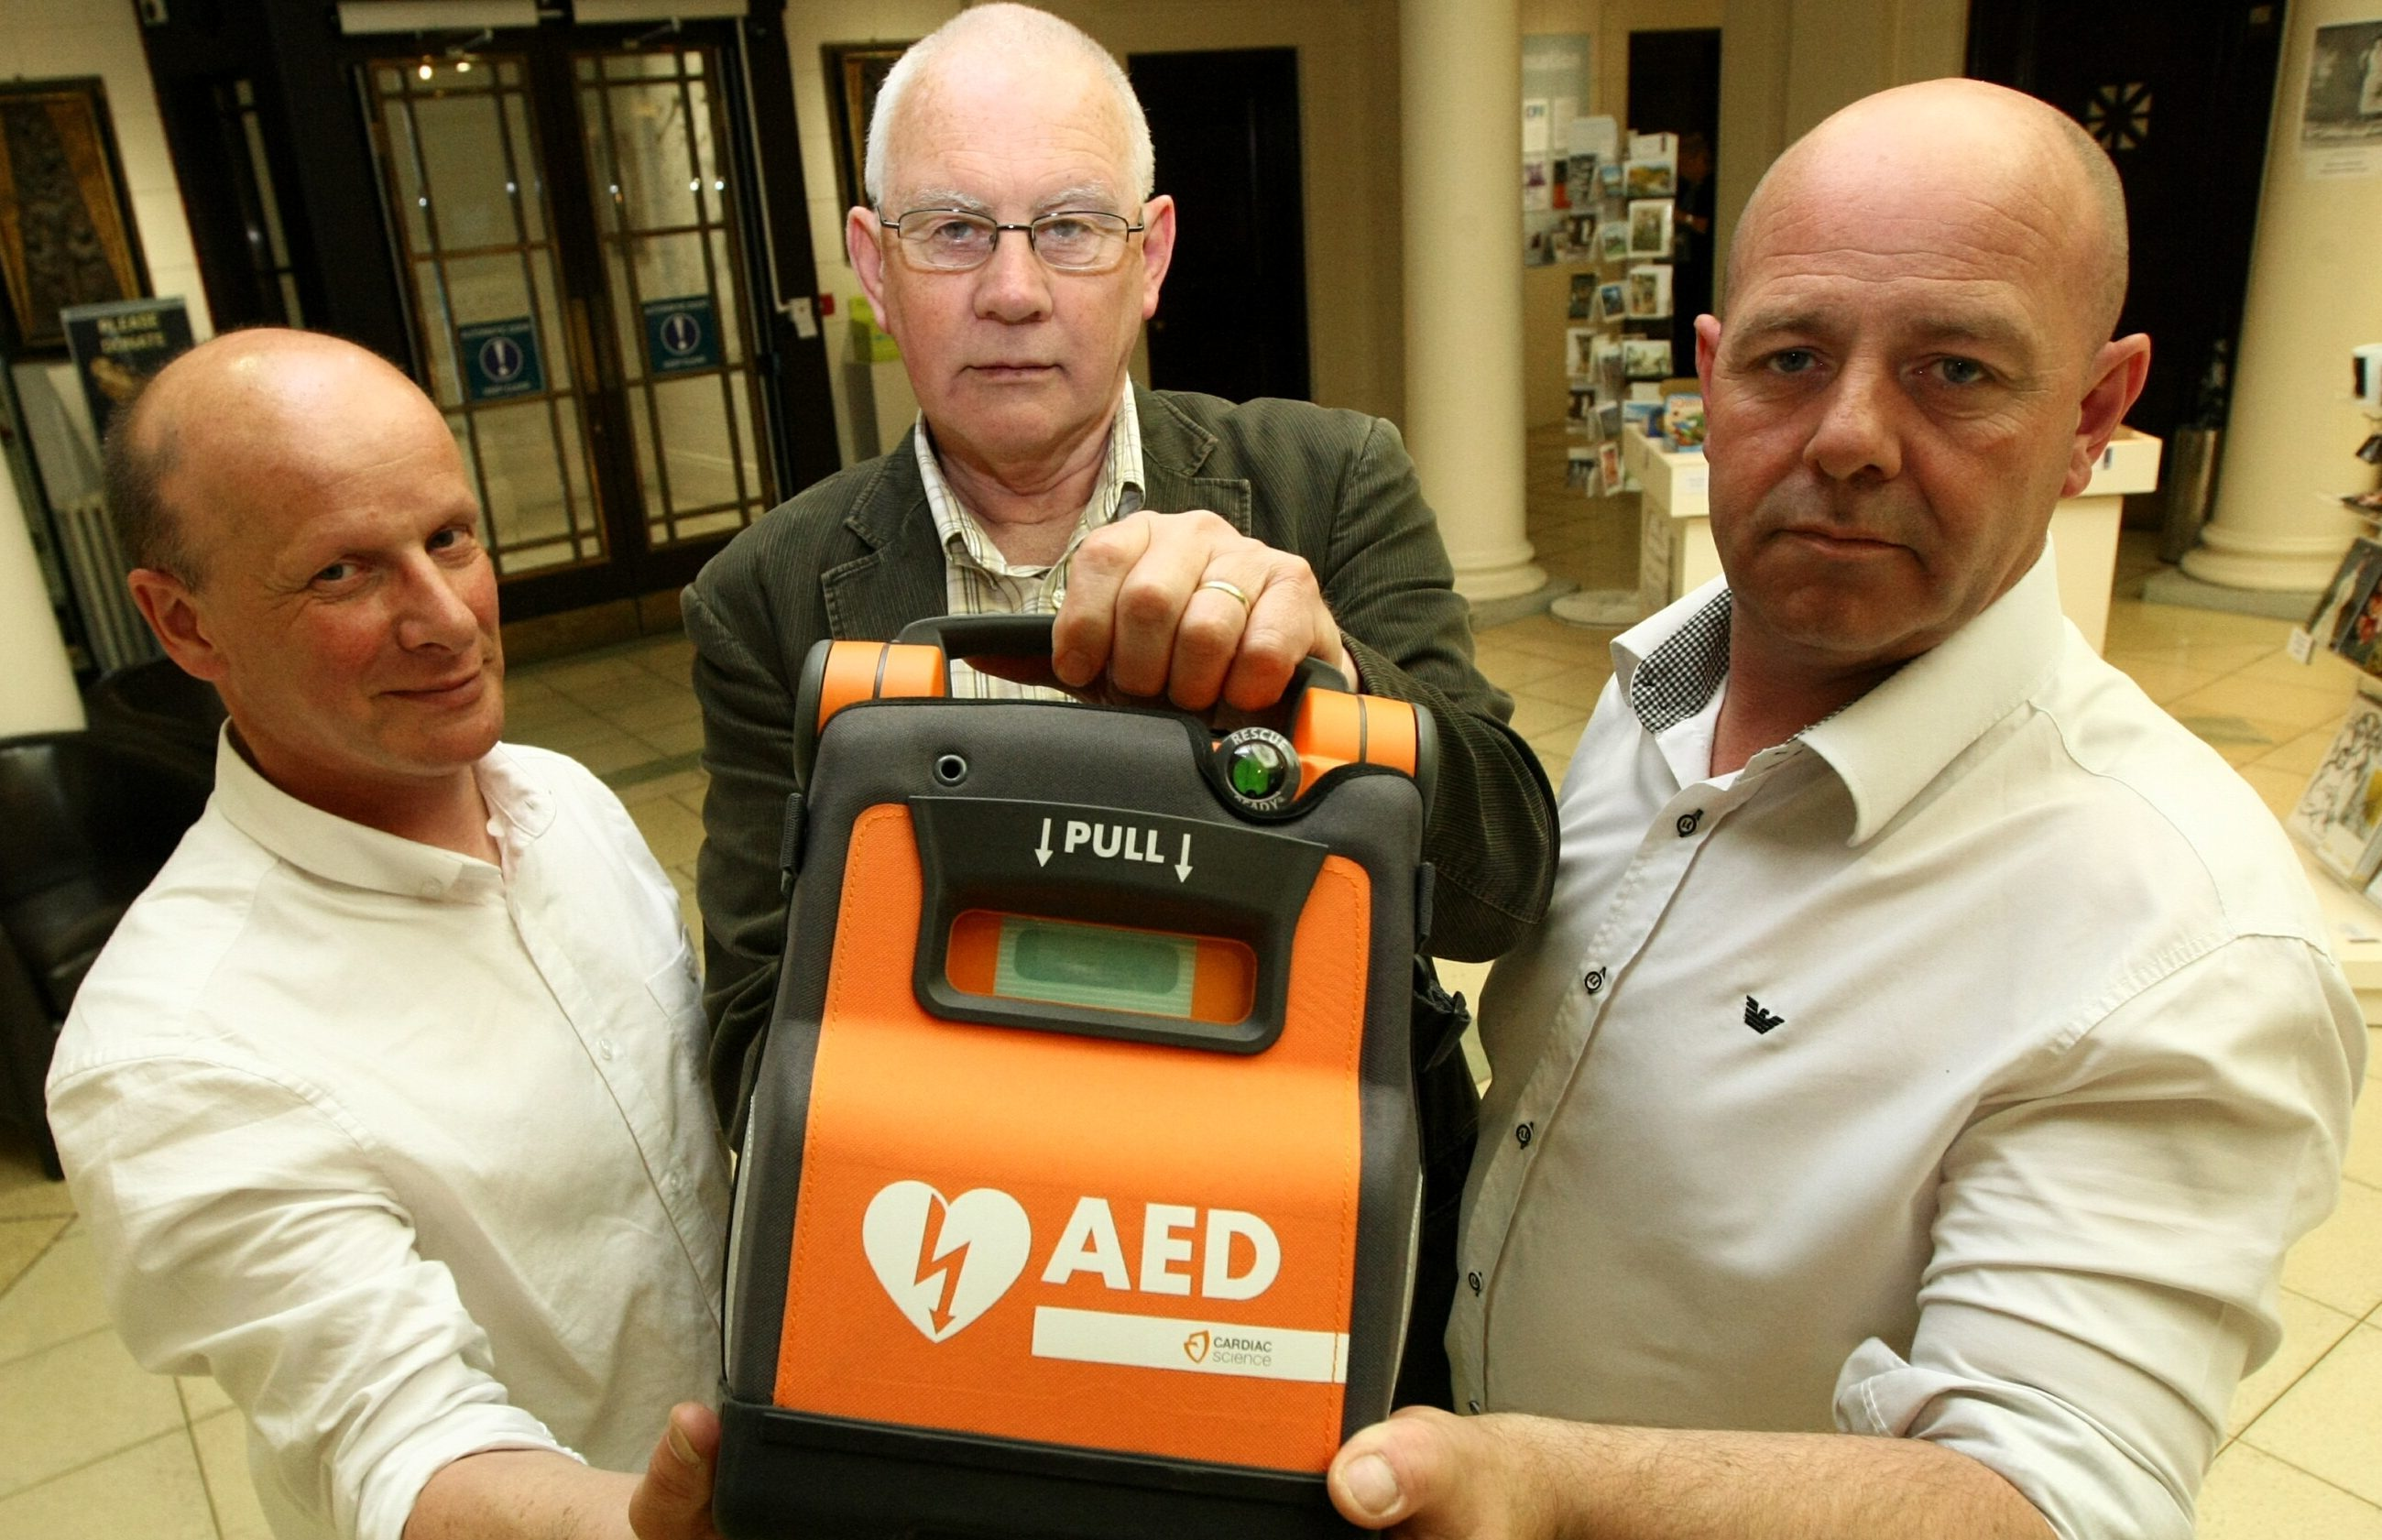 Perth and Kinross Council unveiled the plans for publically available defibrillators at a demonstration event at Perth Museum.  Picture shows left, Alan Stewart, first aid adviser, and right, Alan Moffat, first aid trainer with Bob Ellis - vice convenor of health, safety and wellbeing team.